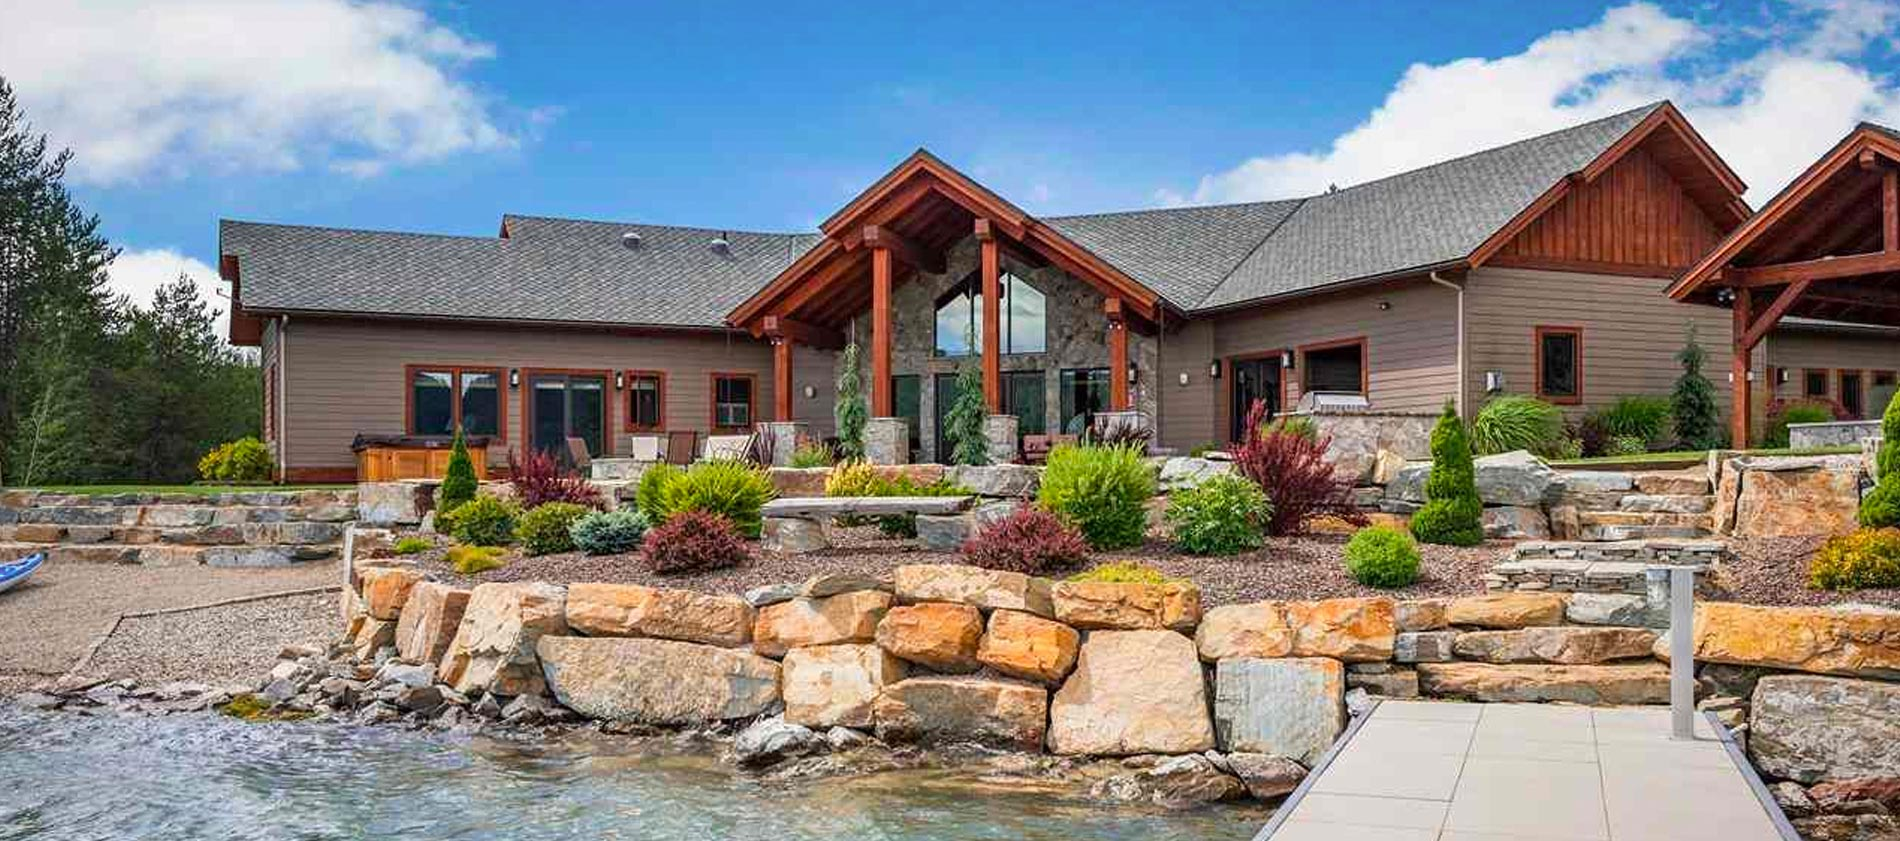 FLATWATER LANDING – Waterfront and Woodlands on the Pend Oreille River